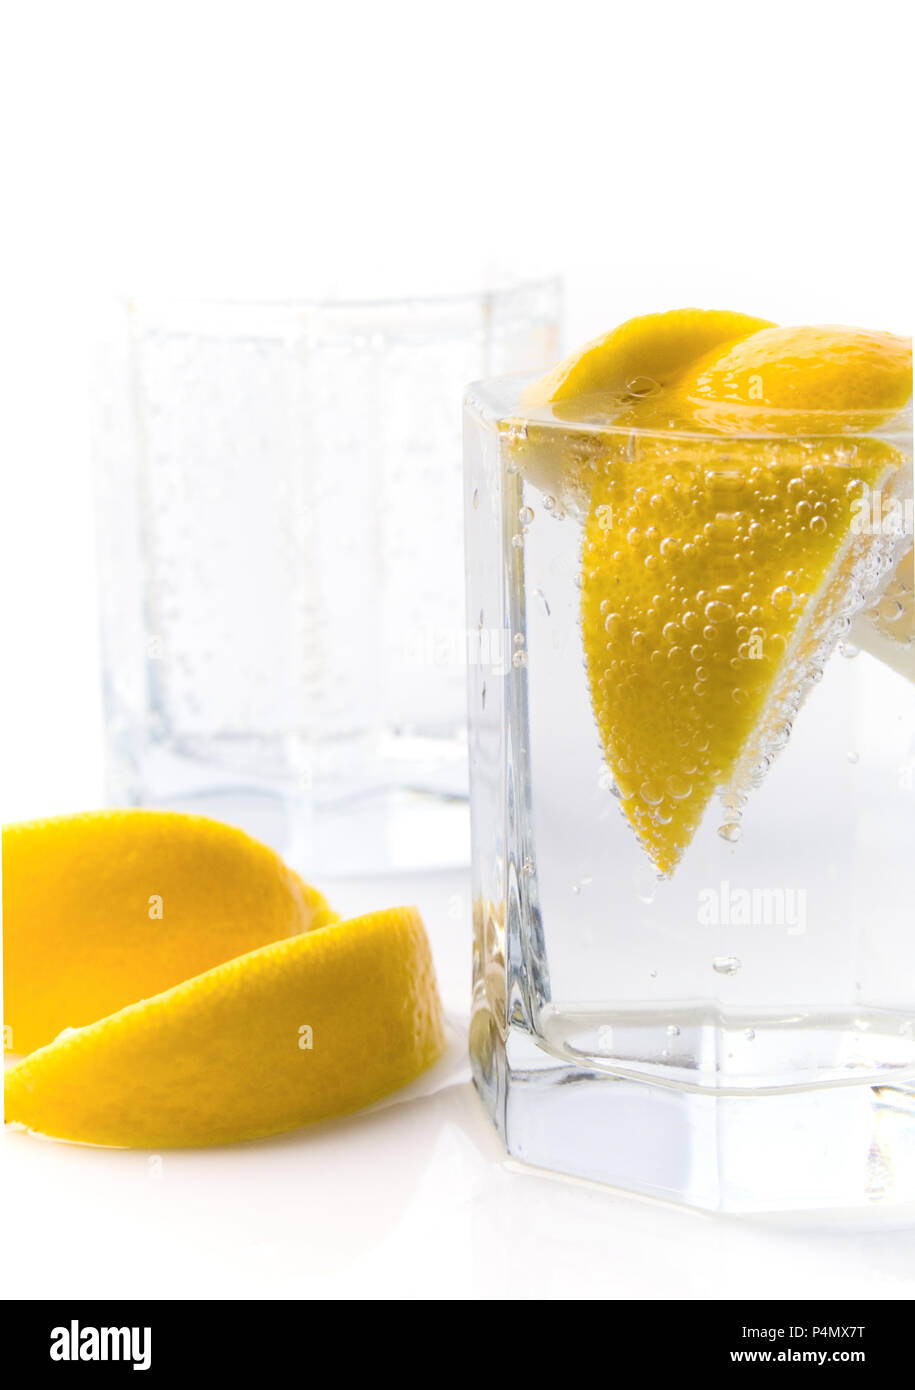 glass with soda water and lemon slices - Stock Image